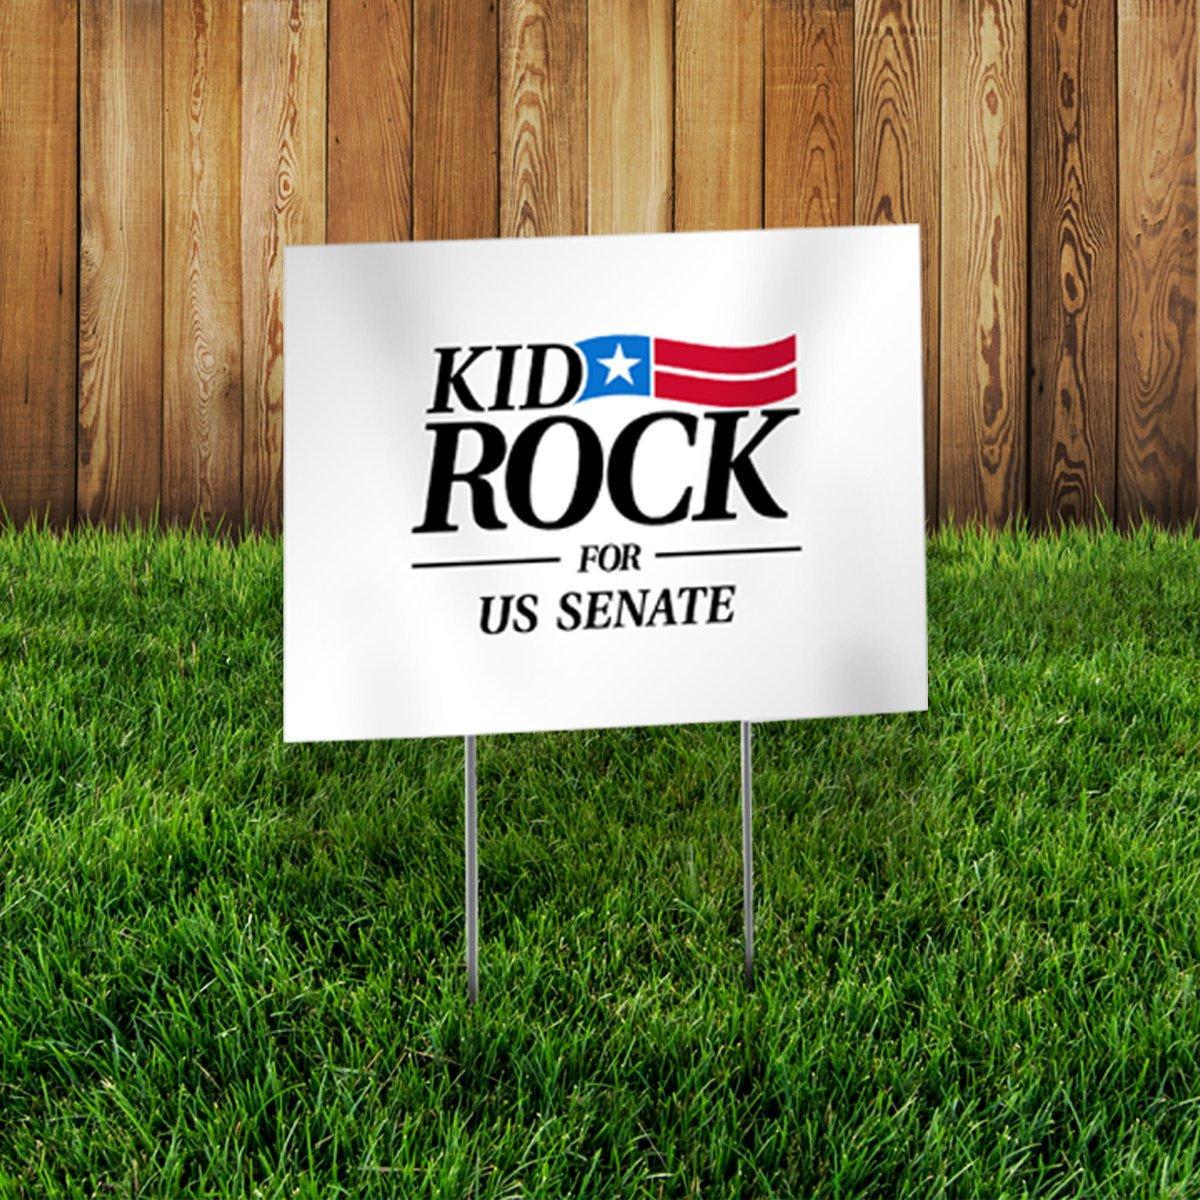 Kid Rock Announces His 2018 Run For Senate